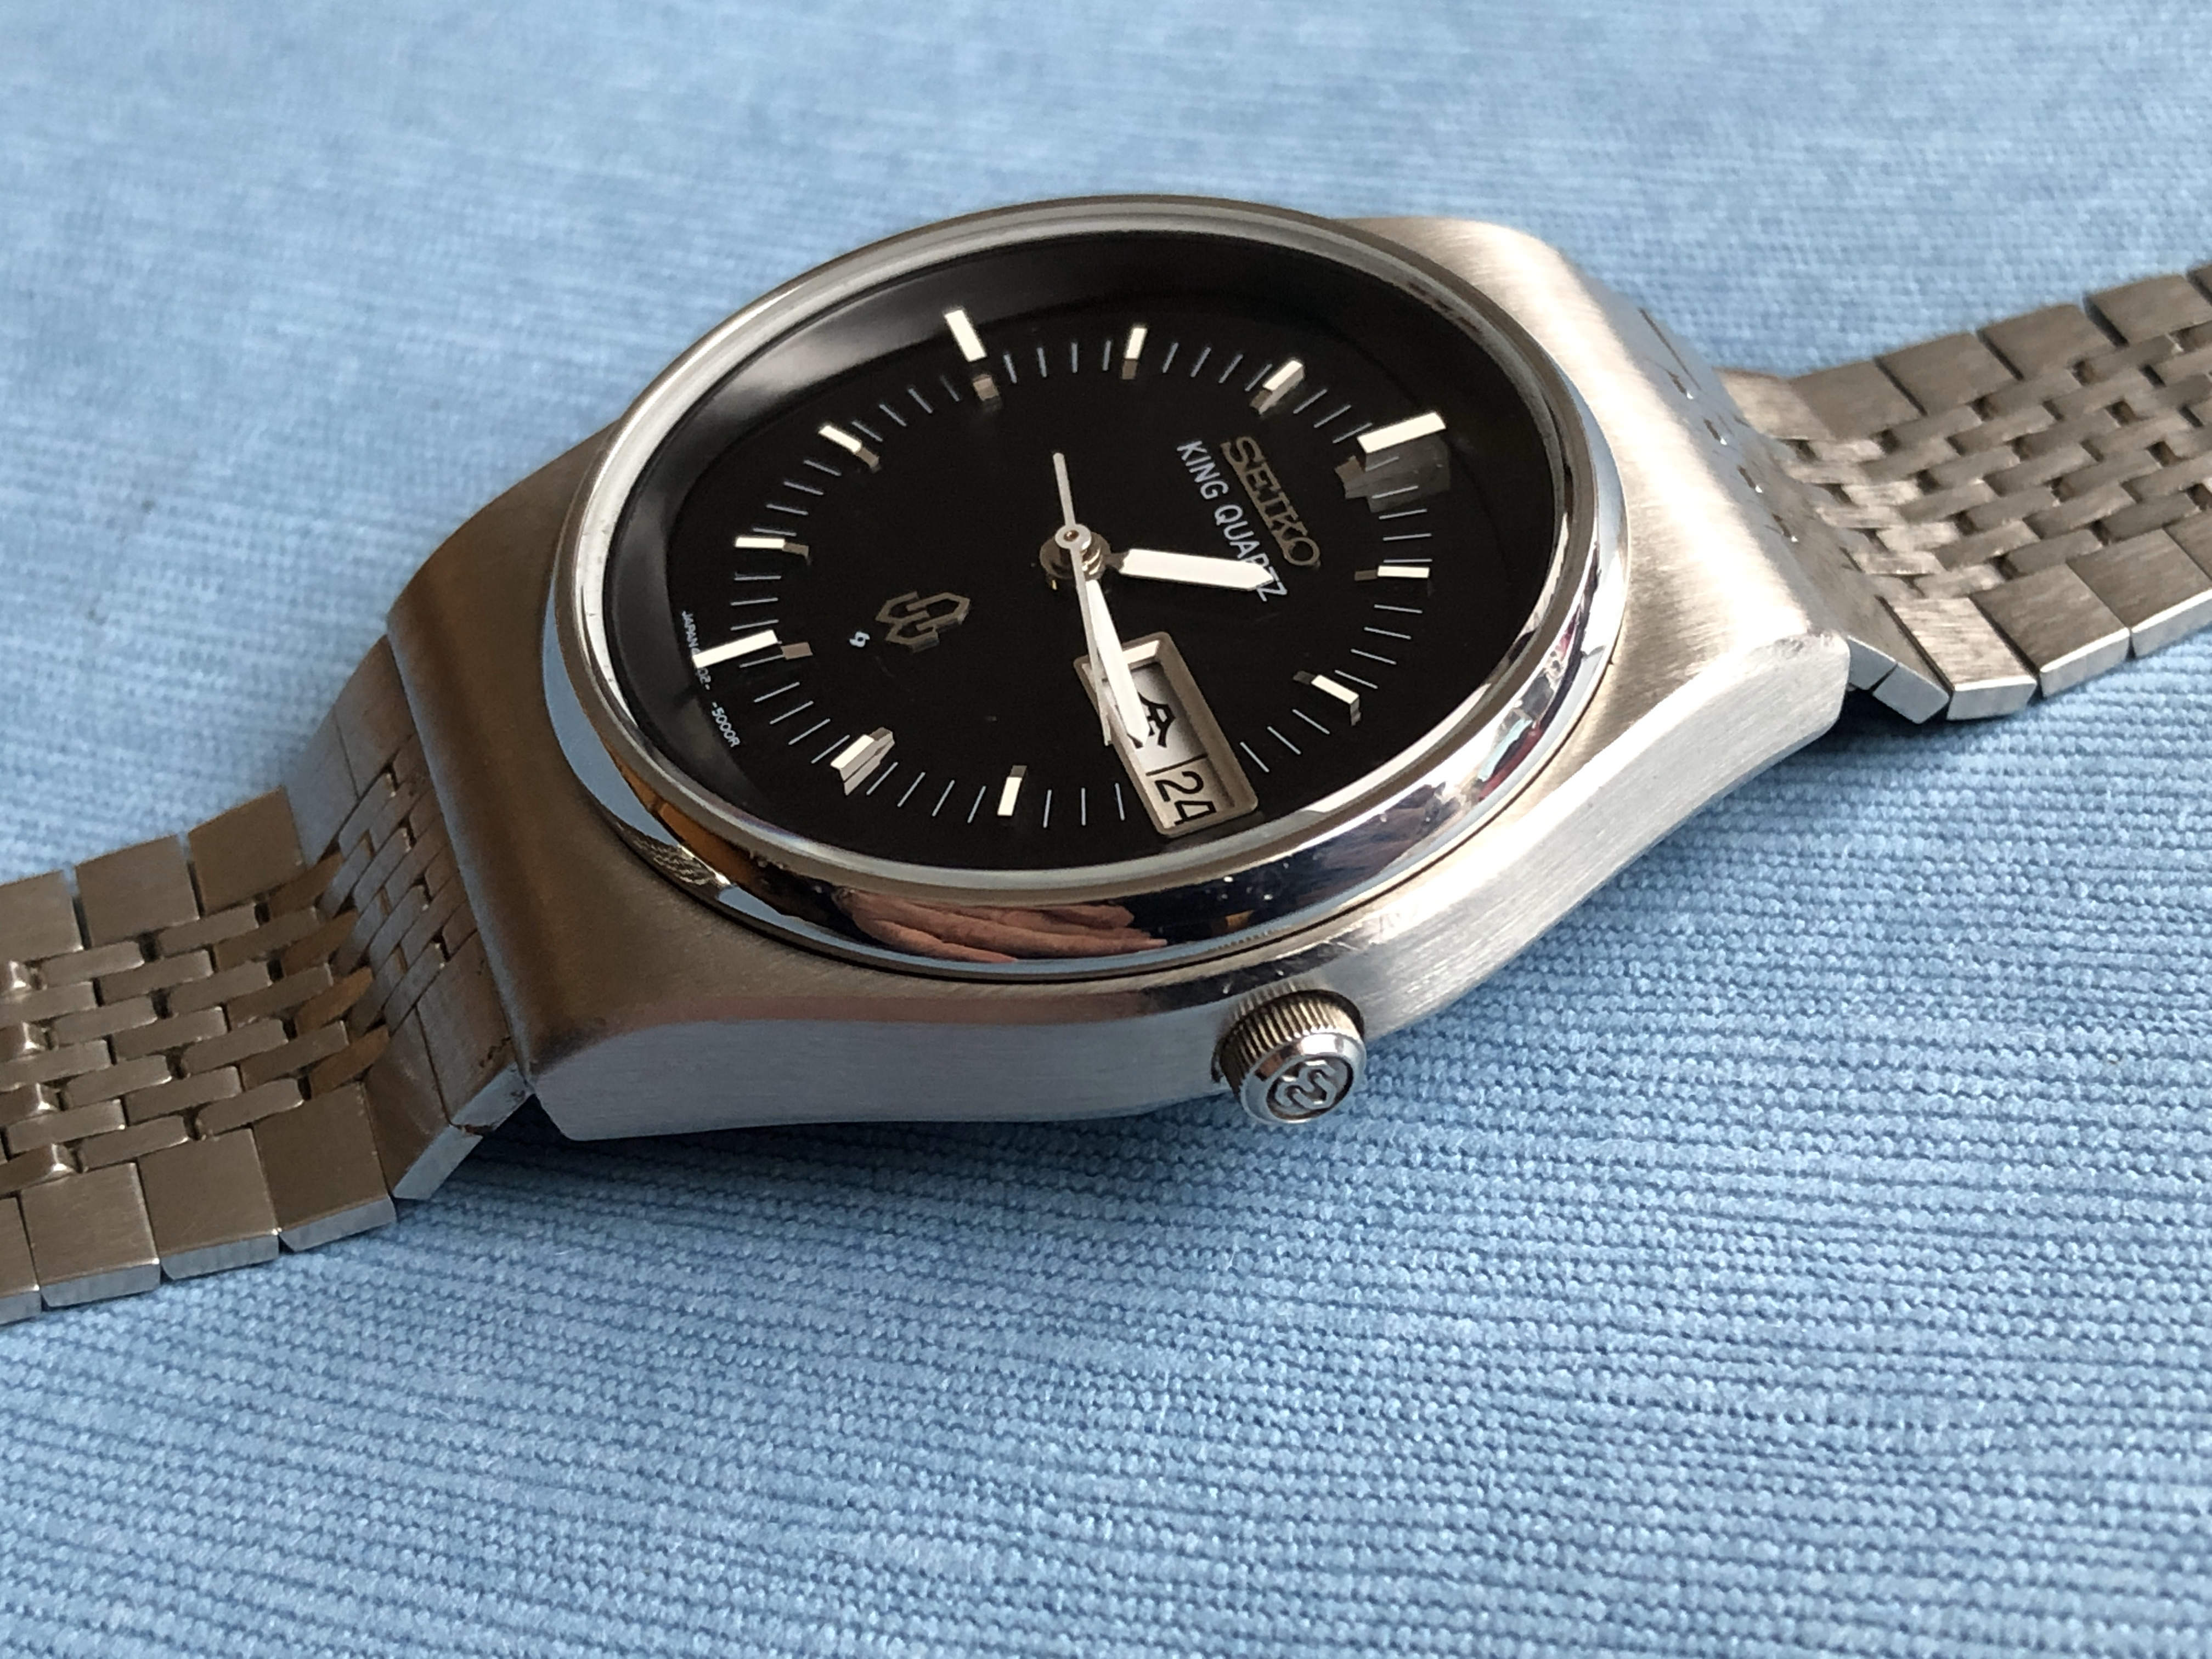 Seiko King Quartz 4823-5000 (Sold)